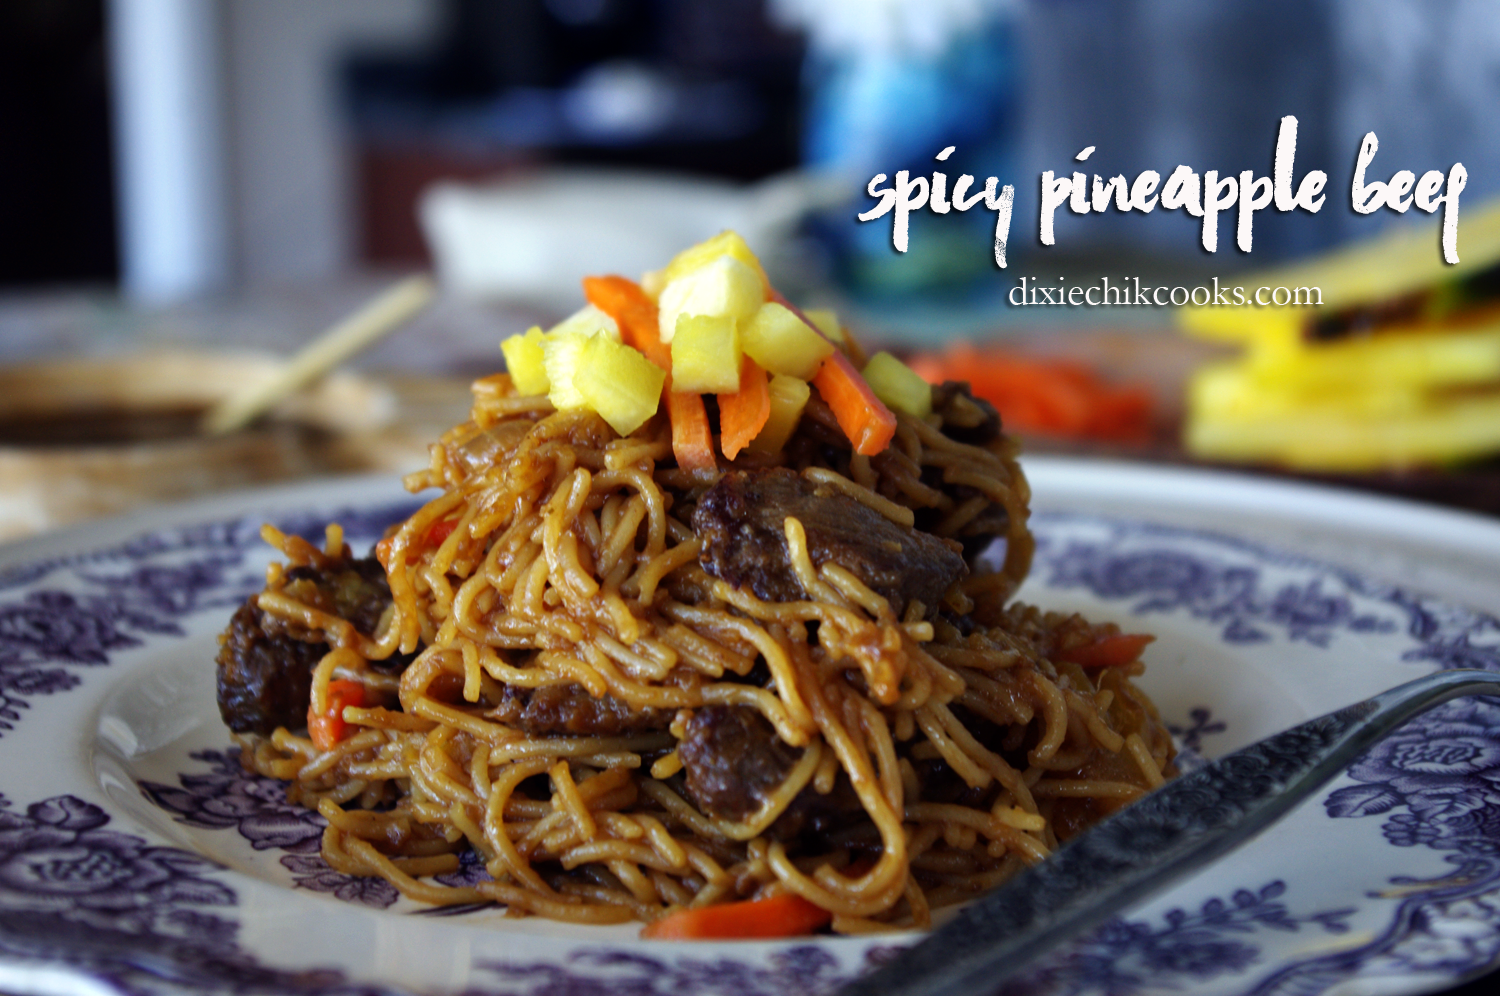 Spicy Pineapple Beef